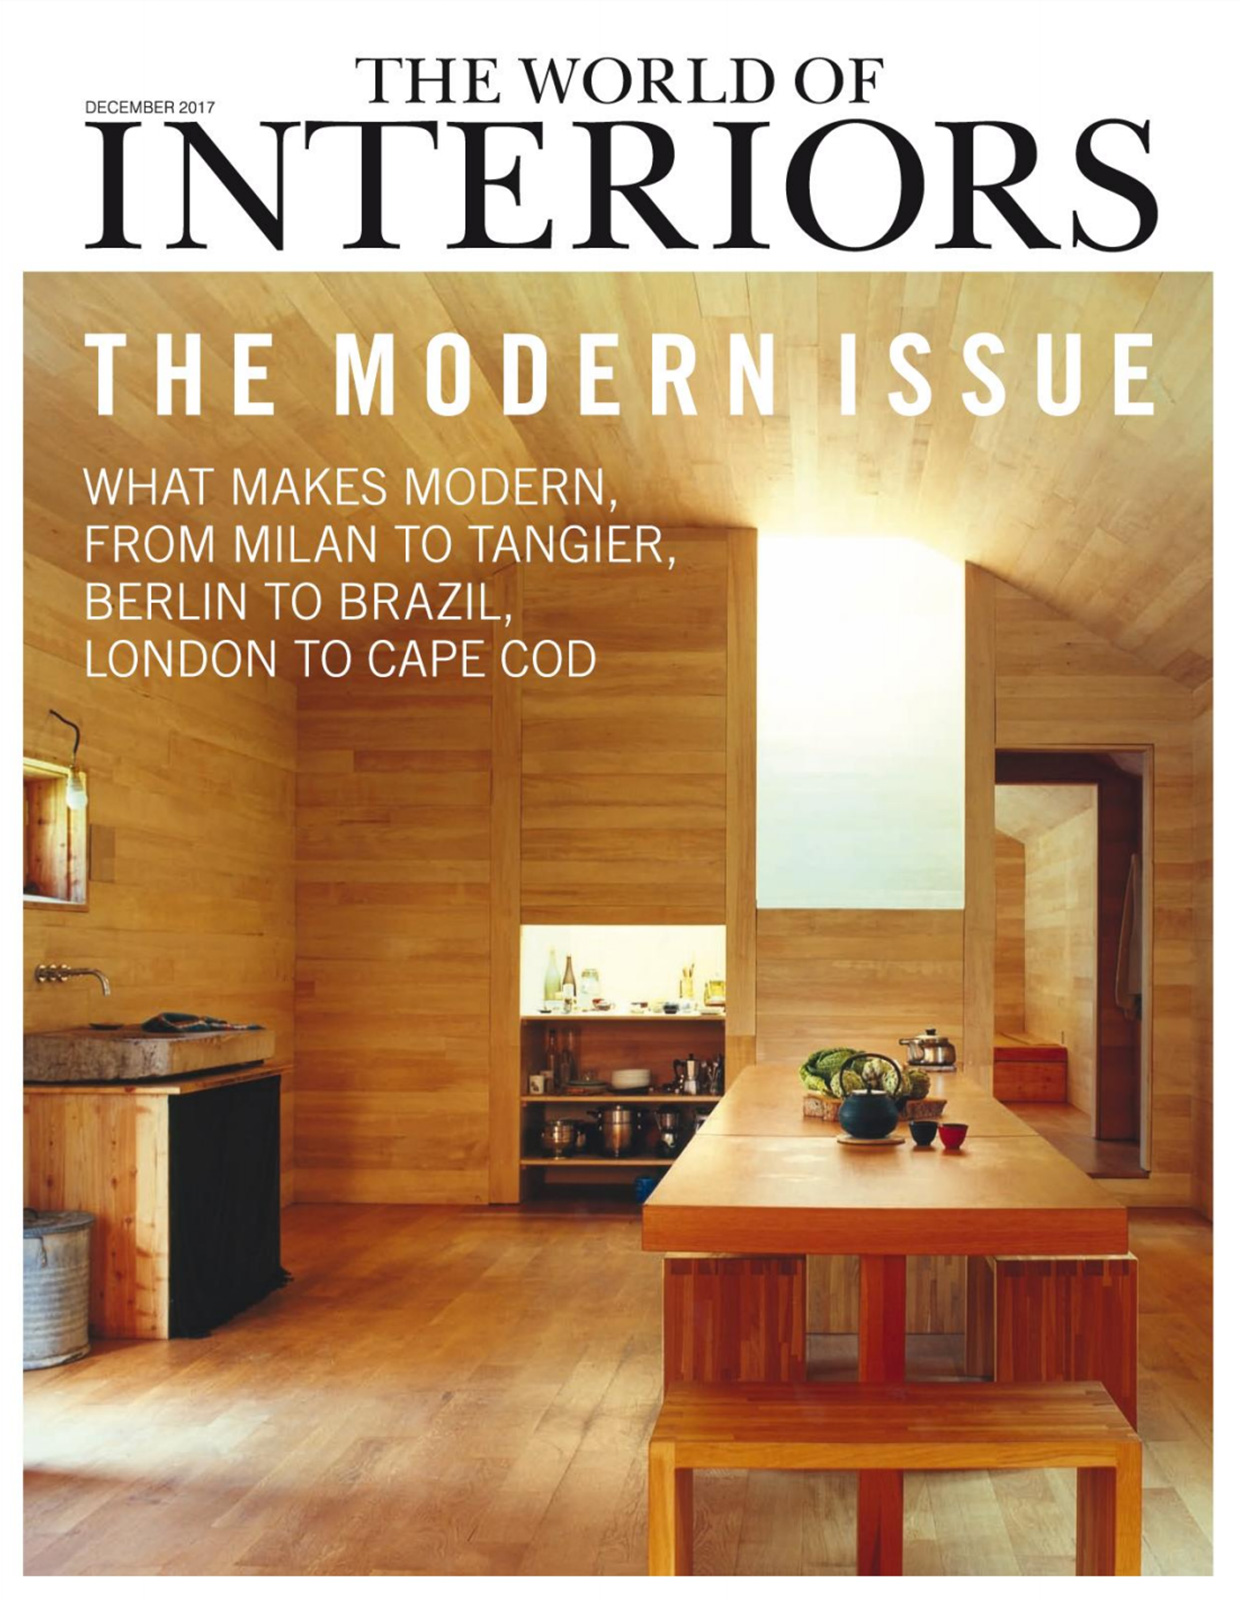 World of Interiors - Décembre 2017